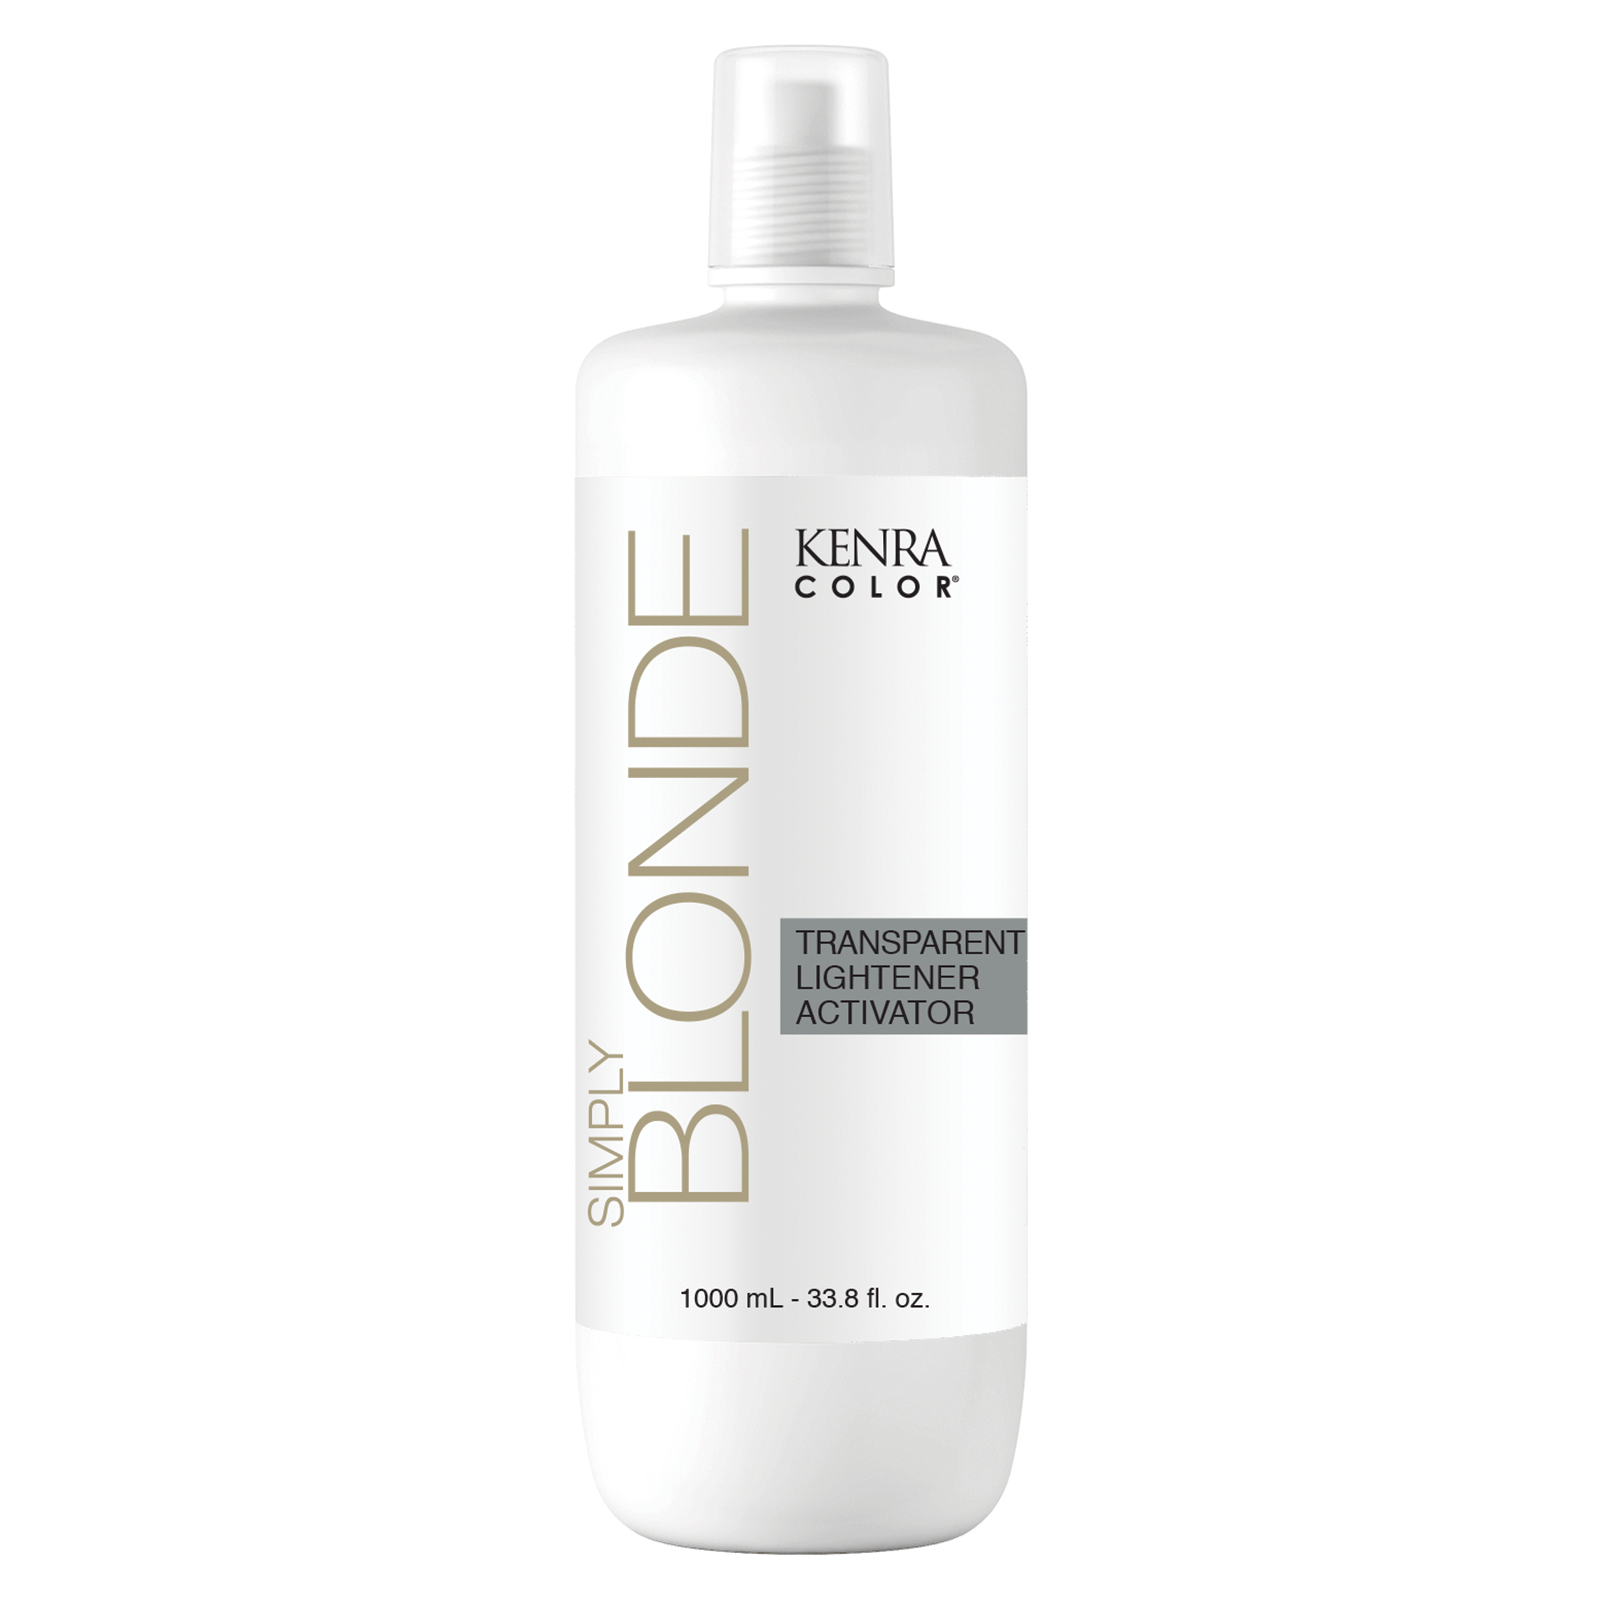 Simply Blonde Transparent Lightener Activator